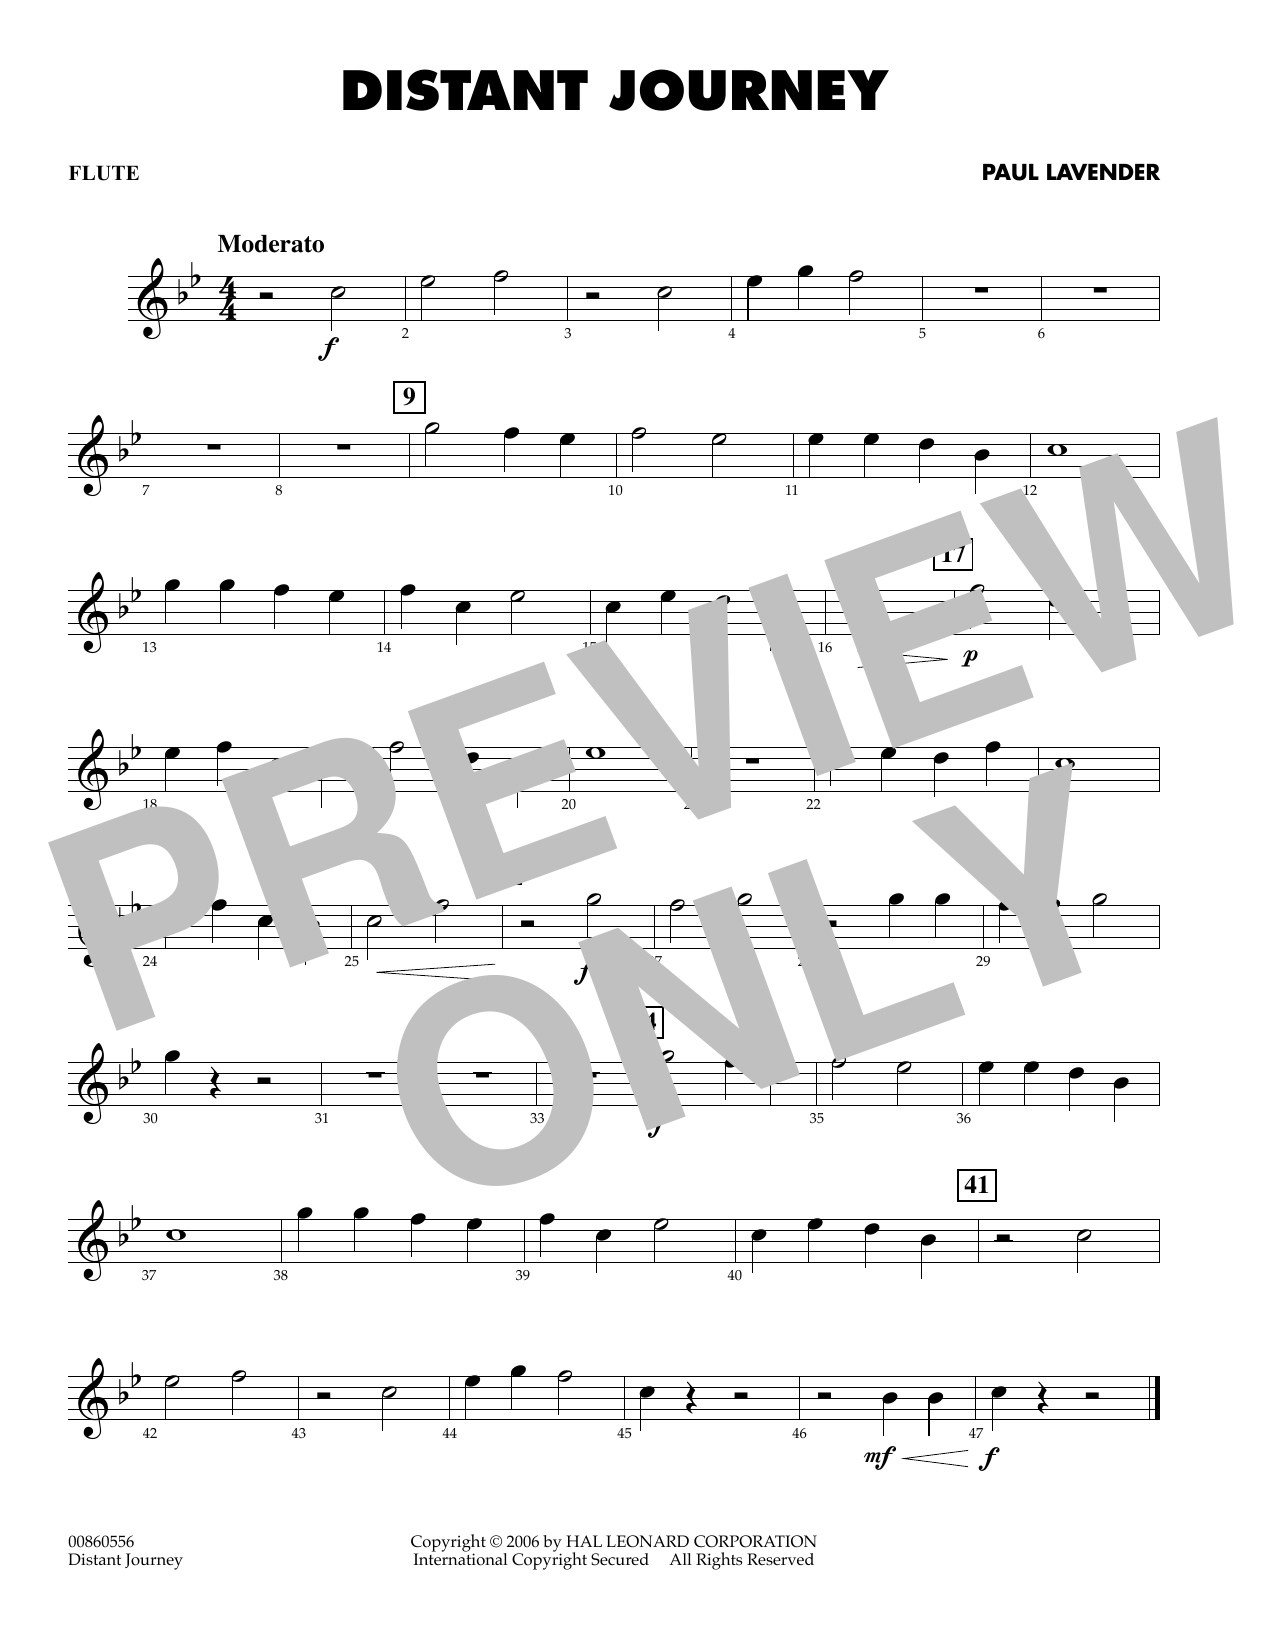 Paul Lavender Distant Journey - Flute sheet music preview music notes and score for Concert Band including 1 page(s)